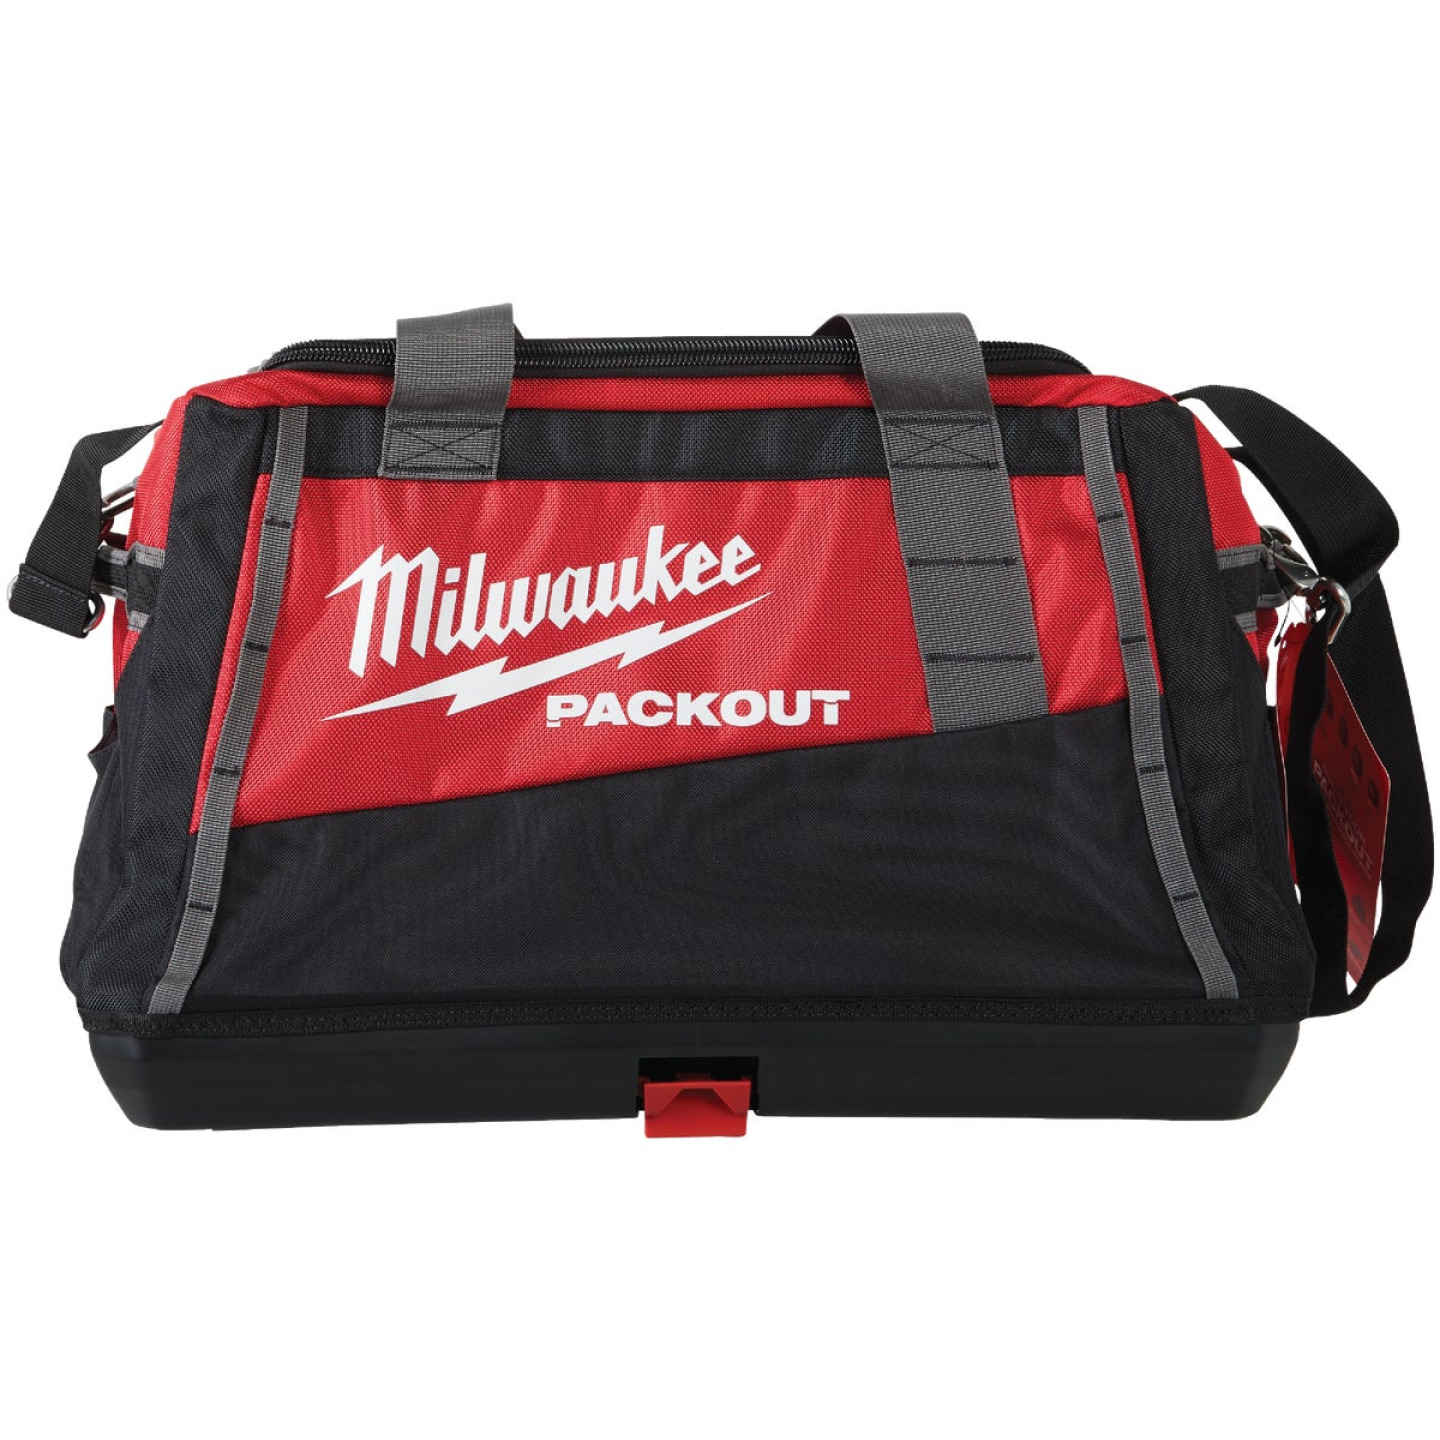 Milwaukee PACKOUT 8-Pocket 20 In. Tool Bag Image 2